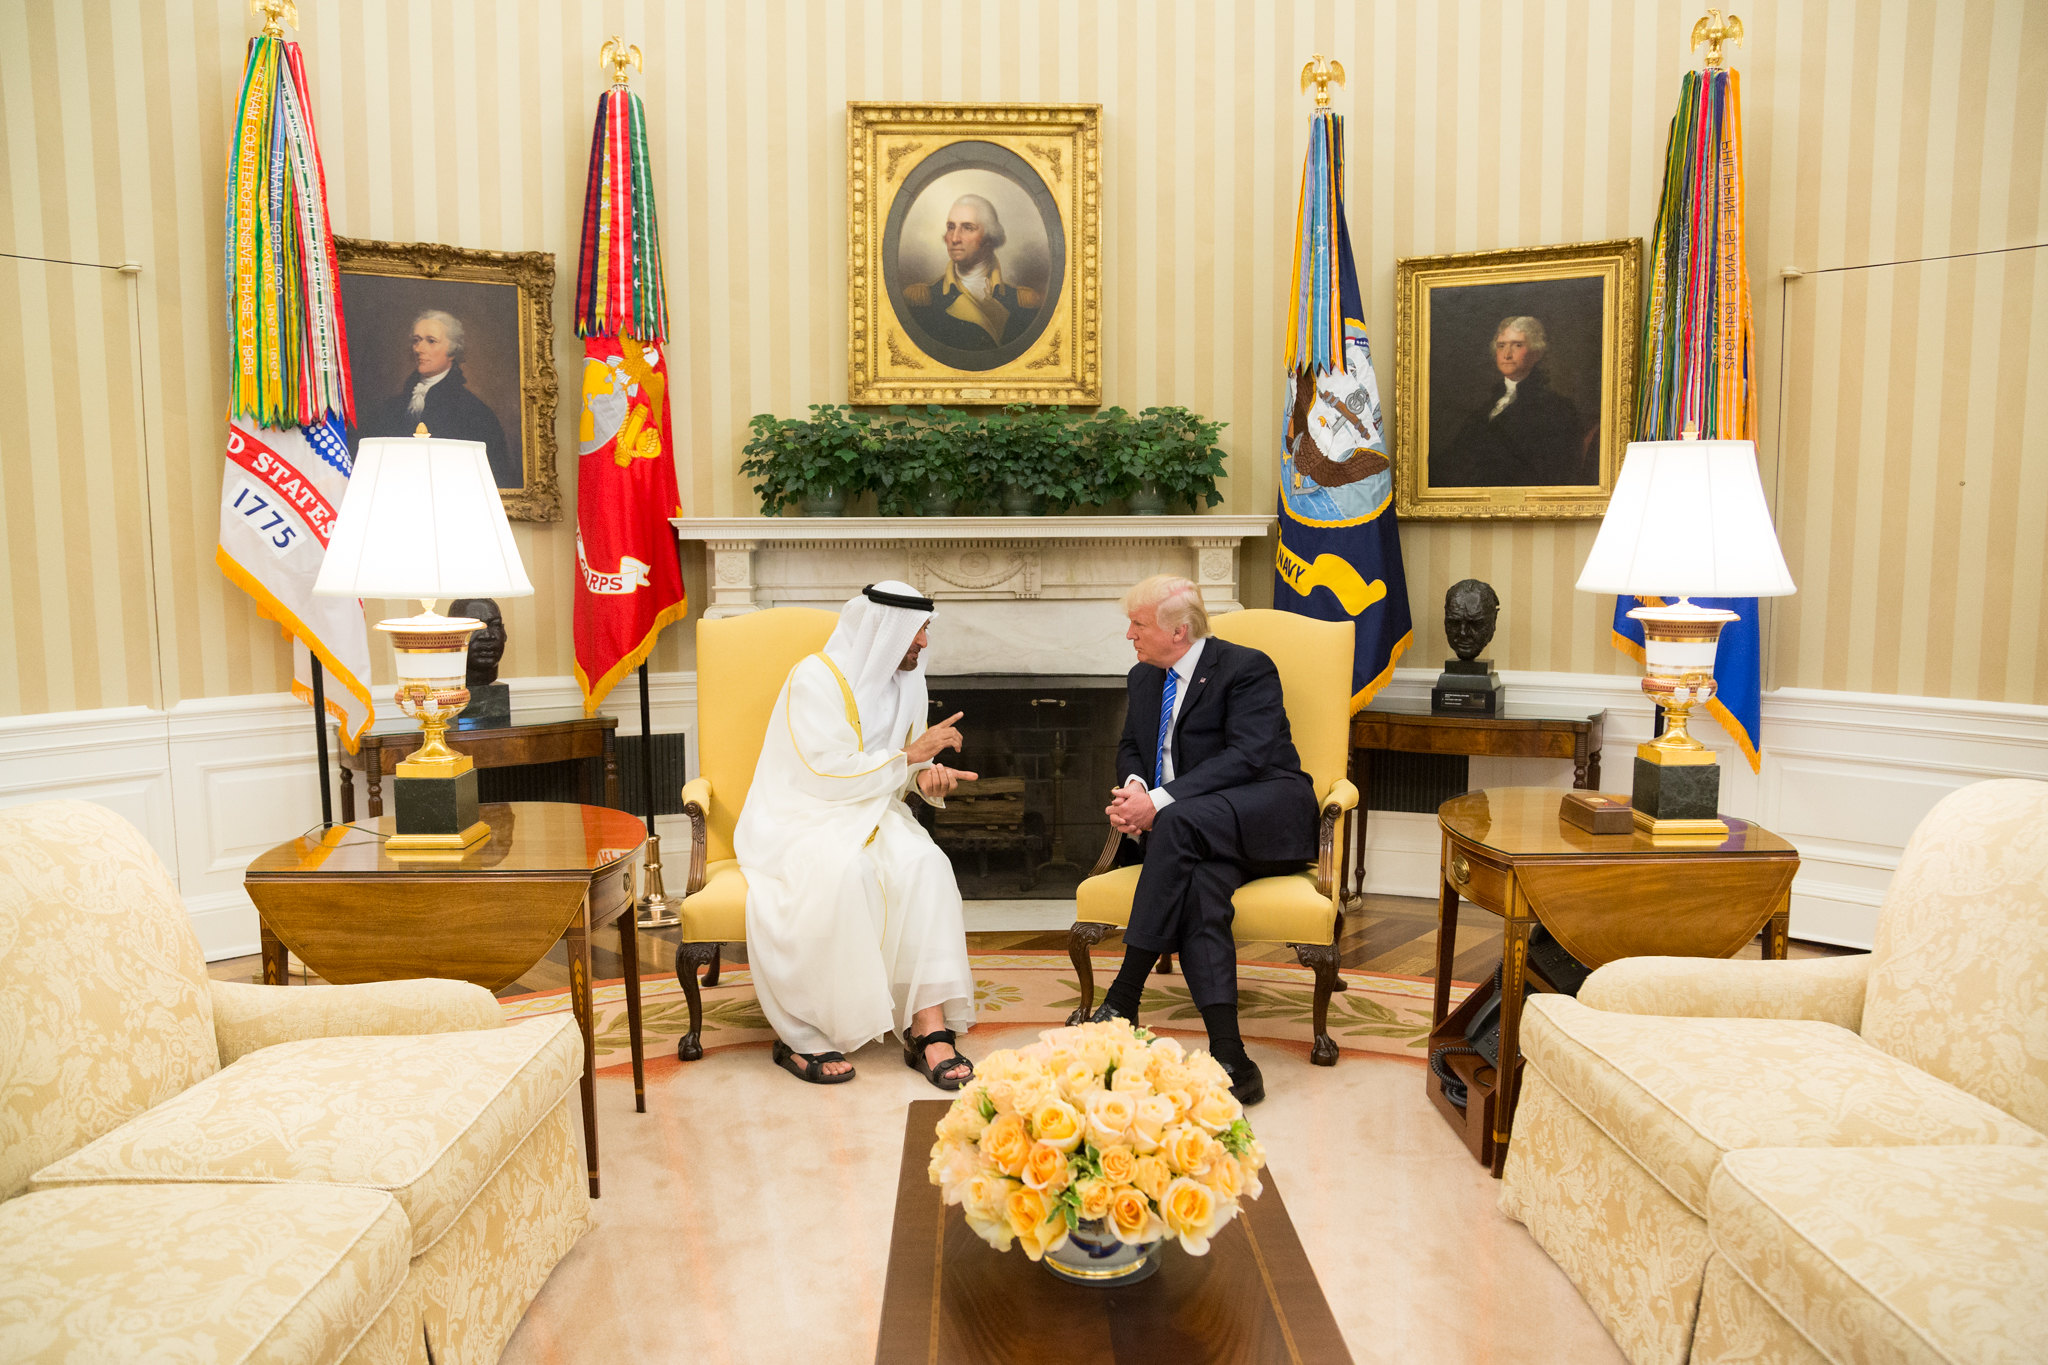 President Donald Trump meets with Sheikh Mohamed bin Zayed Al Nahyan, Crown Prince of Abu Dhabi, in the Oval Office of the White House, May 15, 2017, in Washington, D.C. (Official White House Photo/Shealah Craighead)